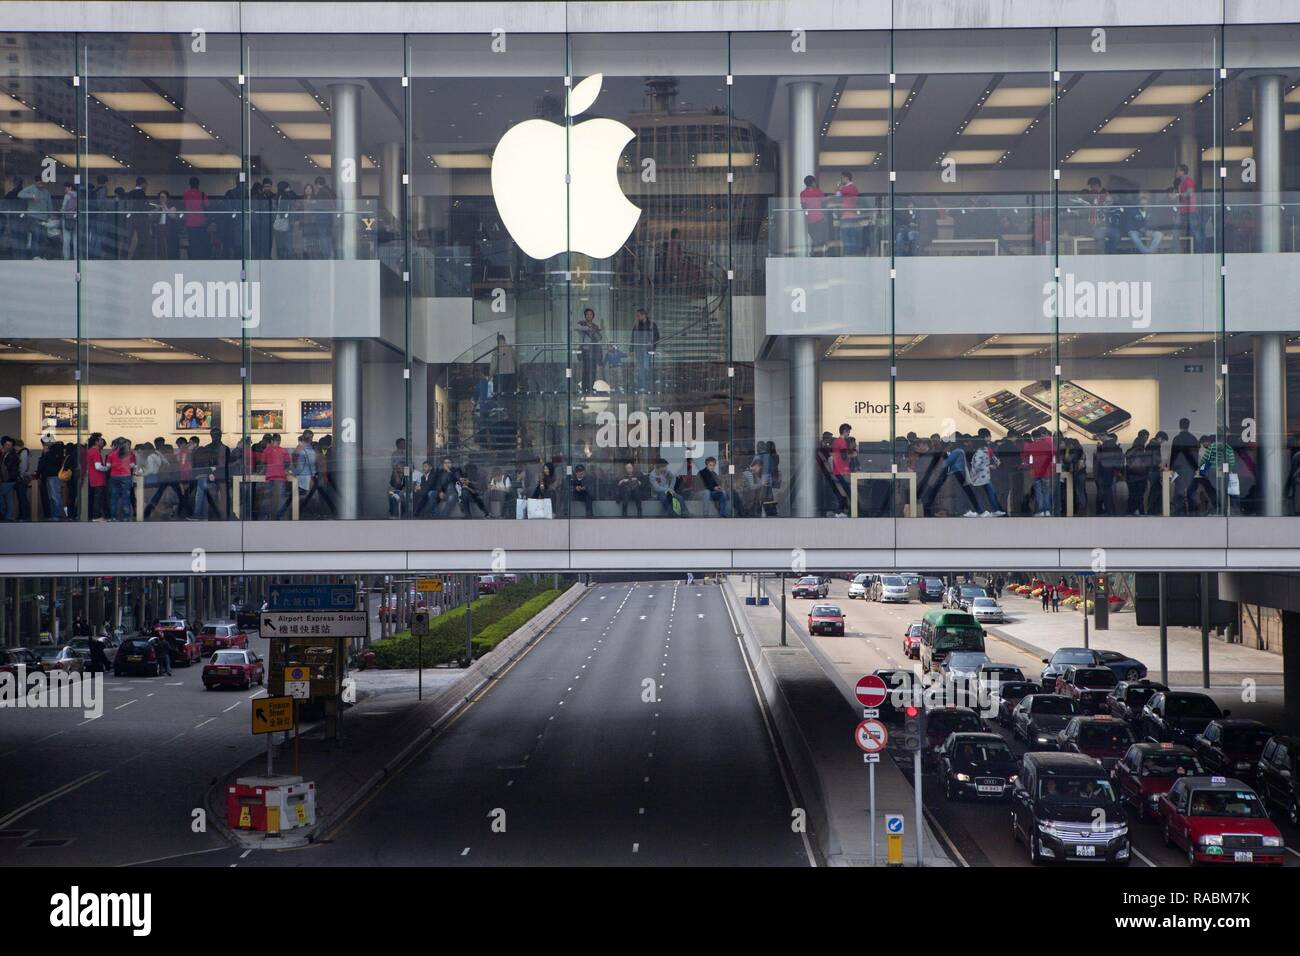 apple store in Hongkong | usage worldwide Stock Photo